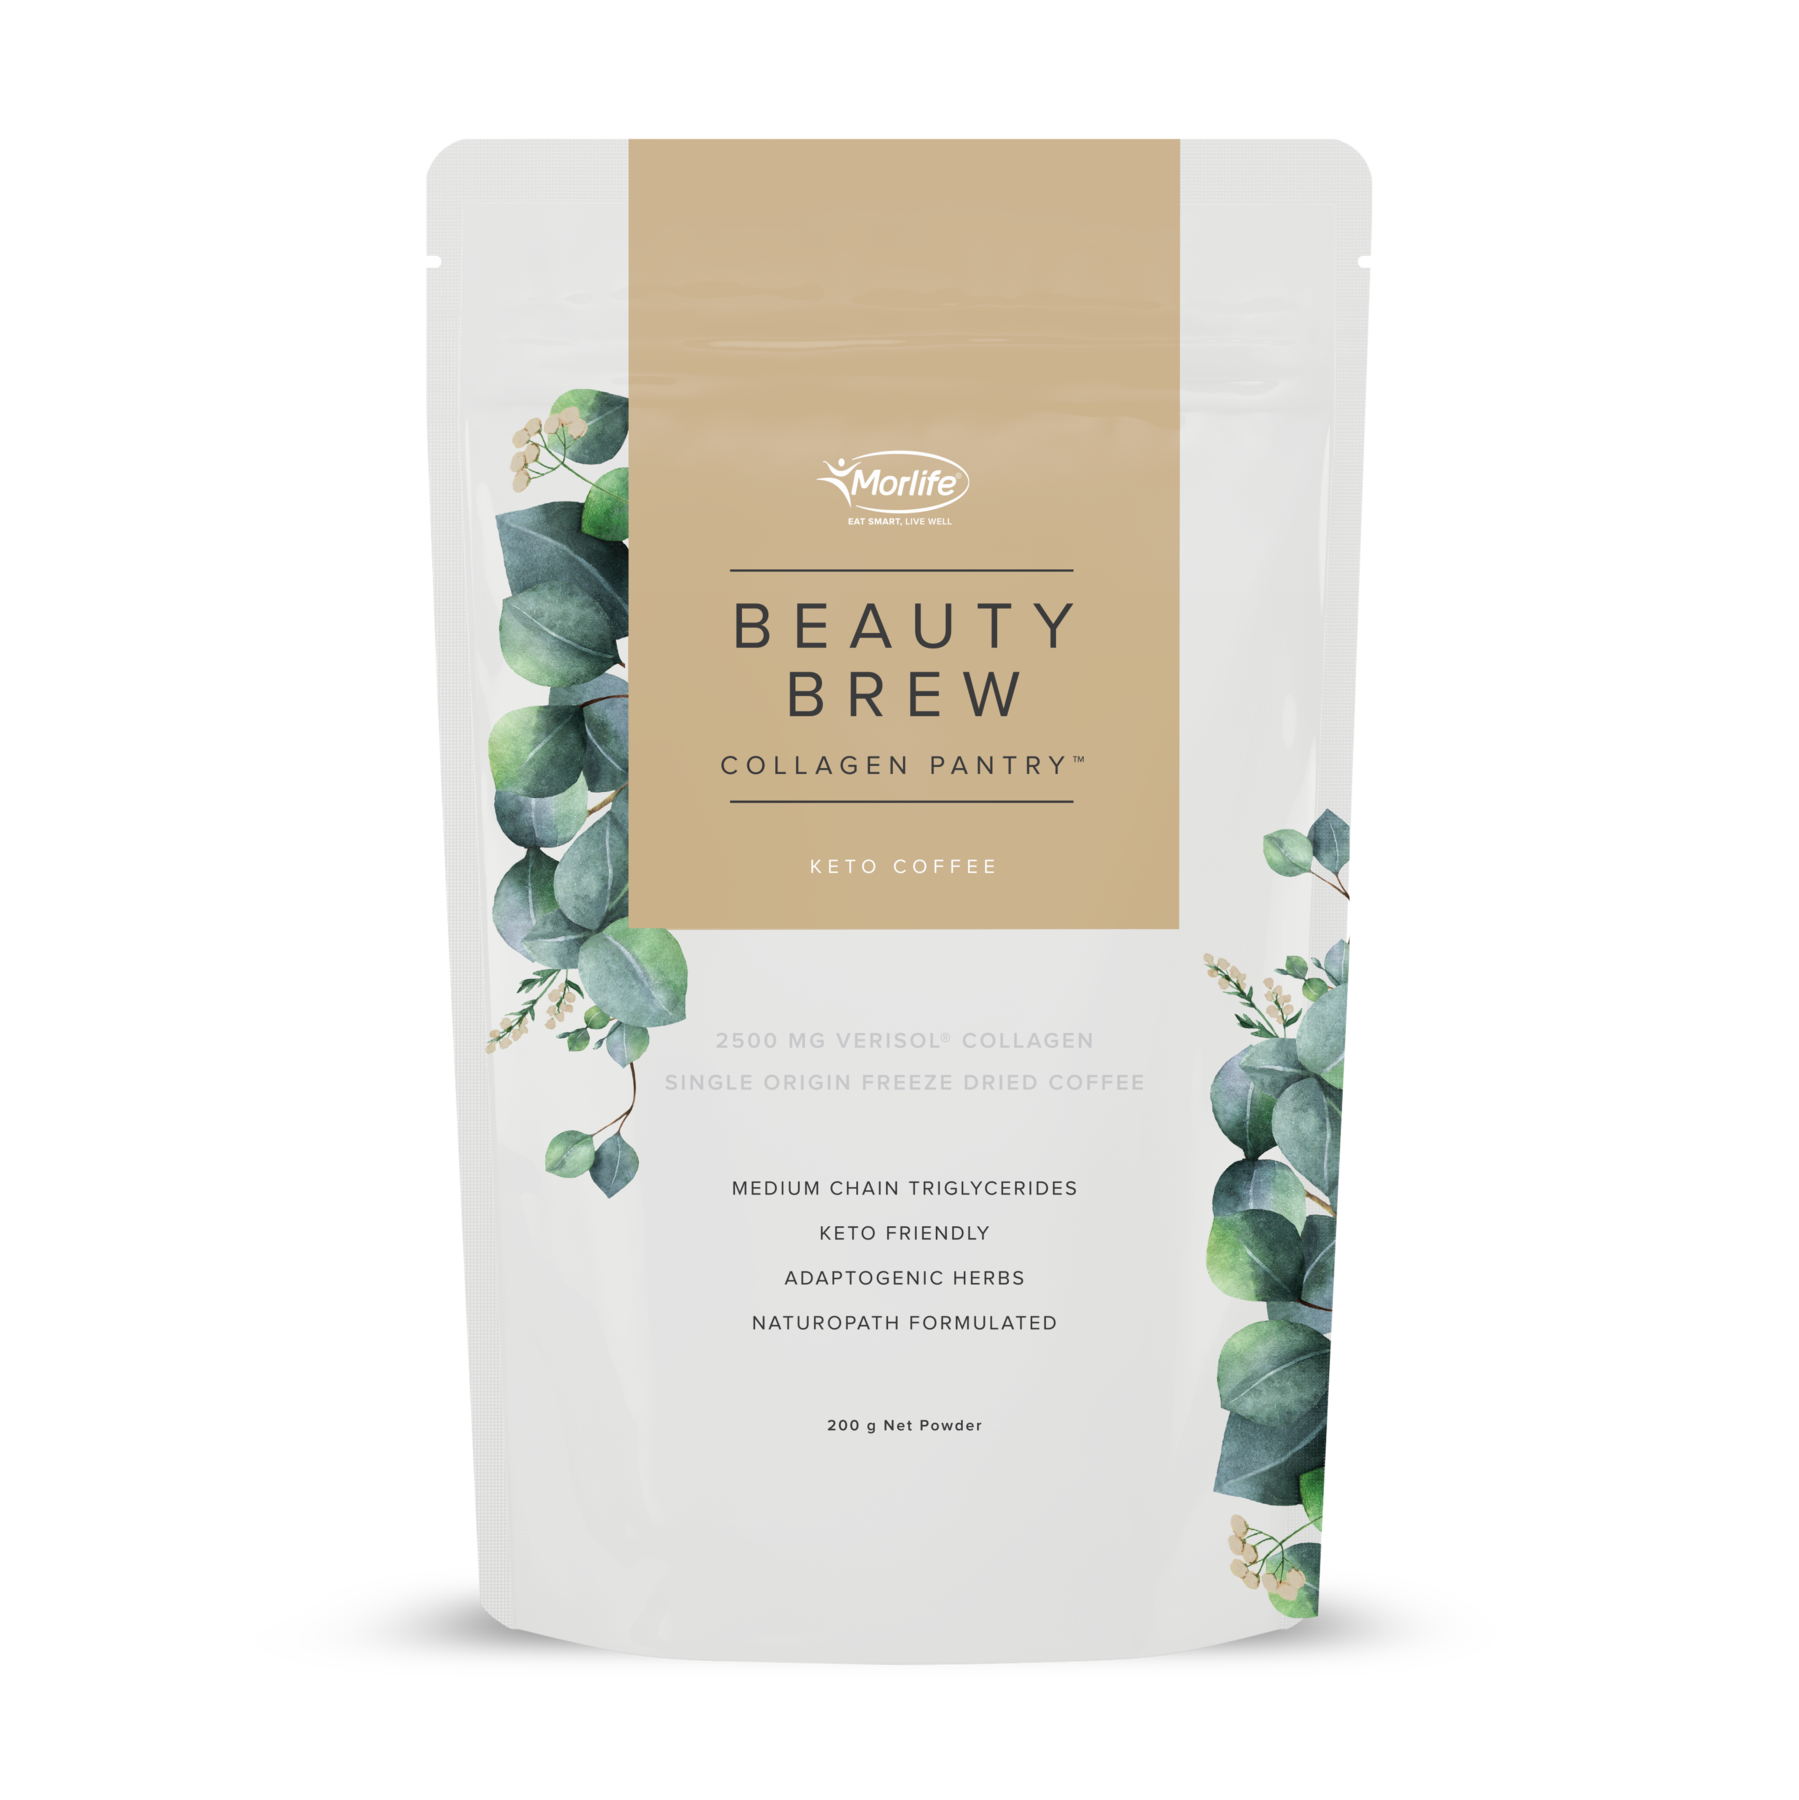 MORLIFE - BEAUTY BREW KETO COFFEE 200G